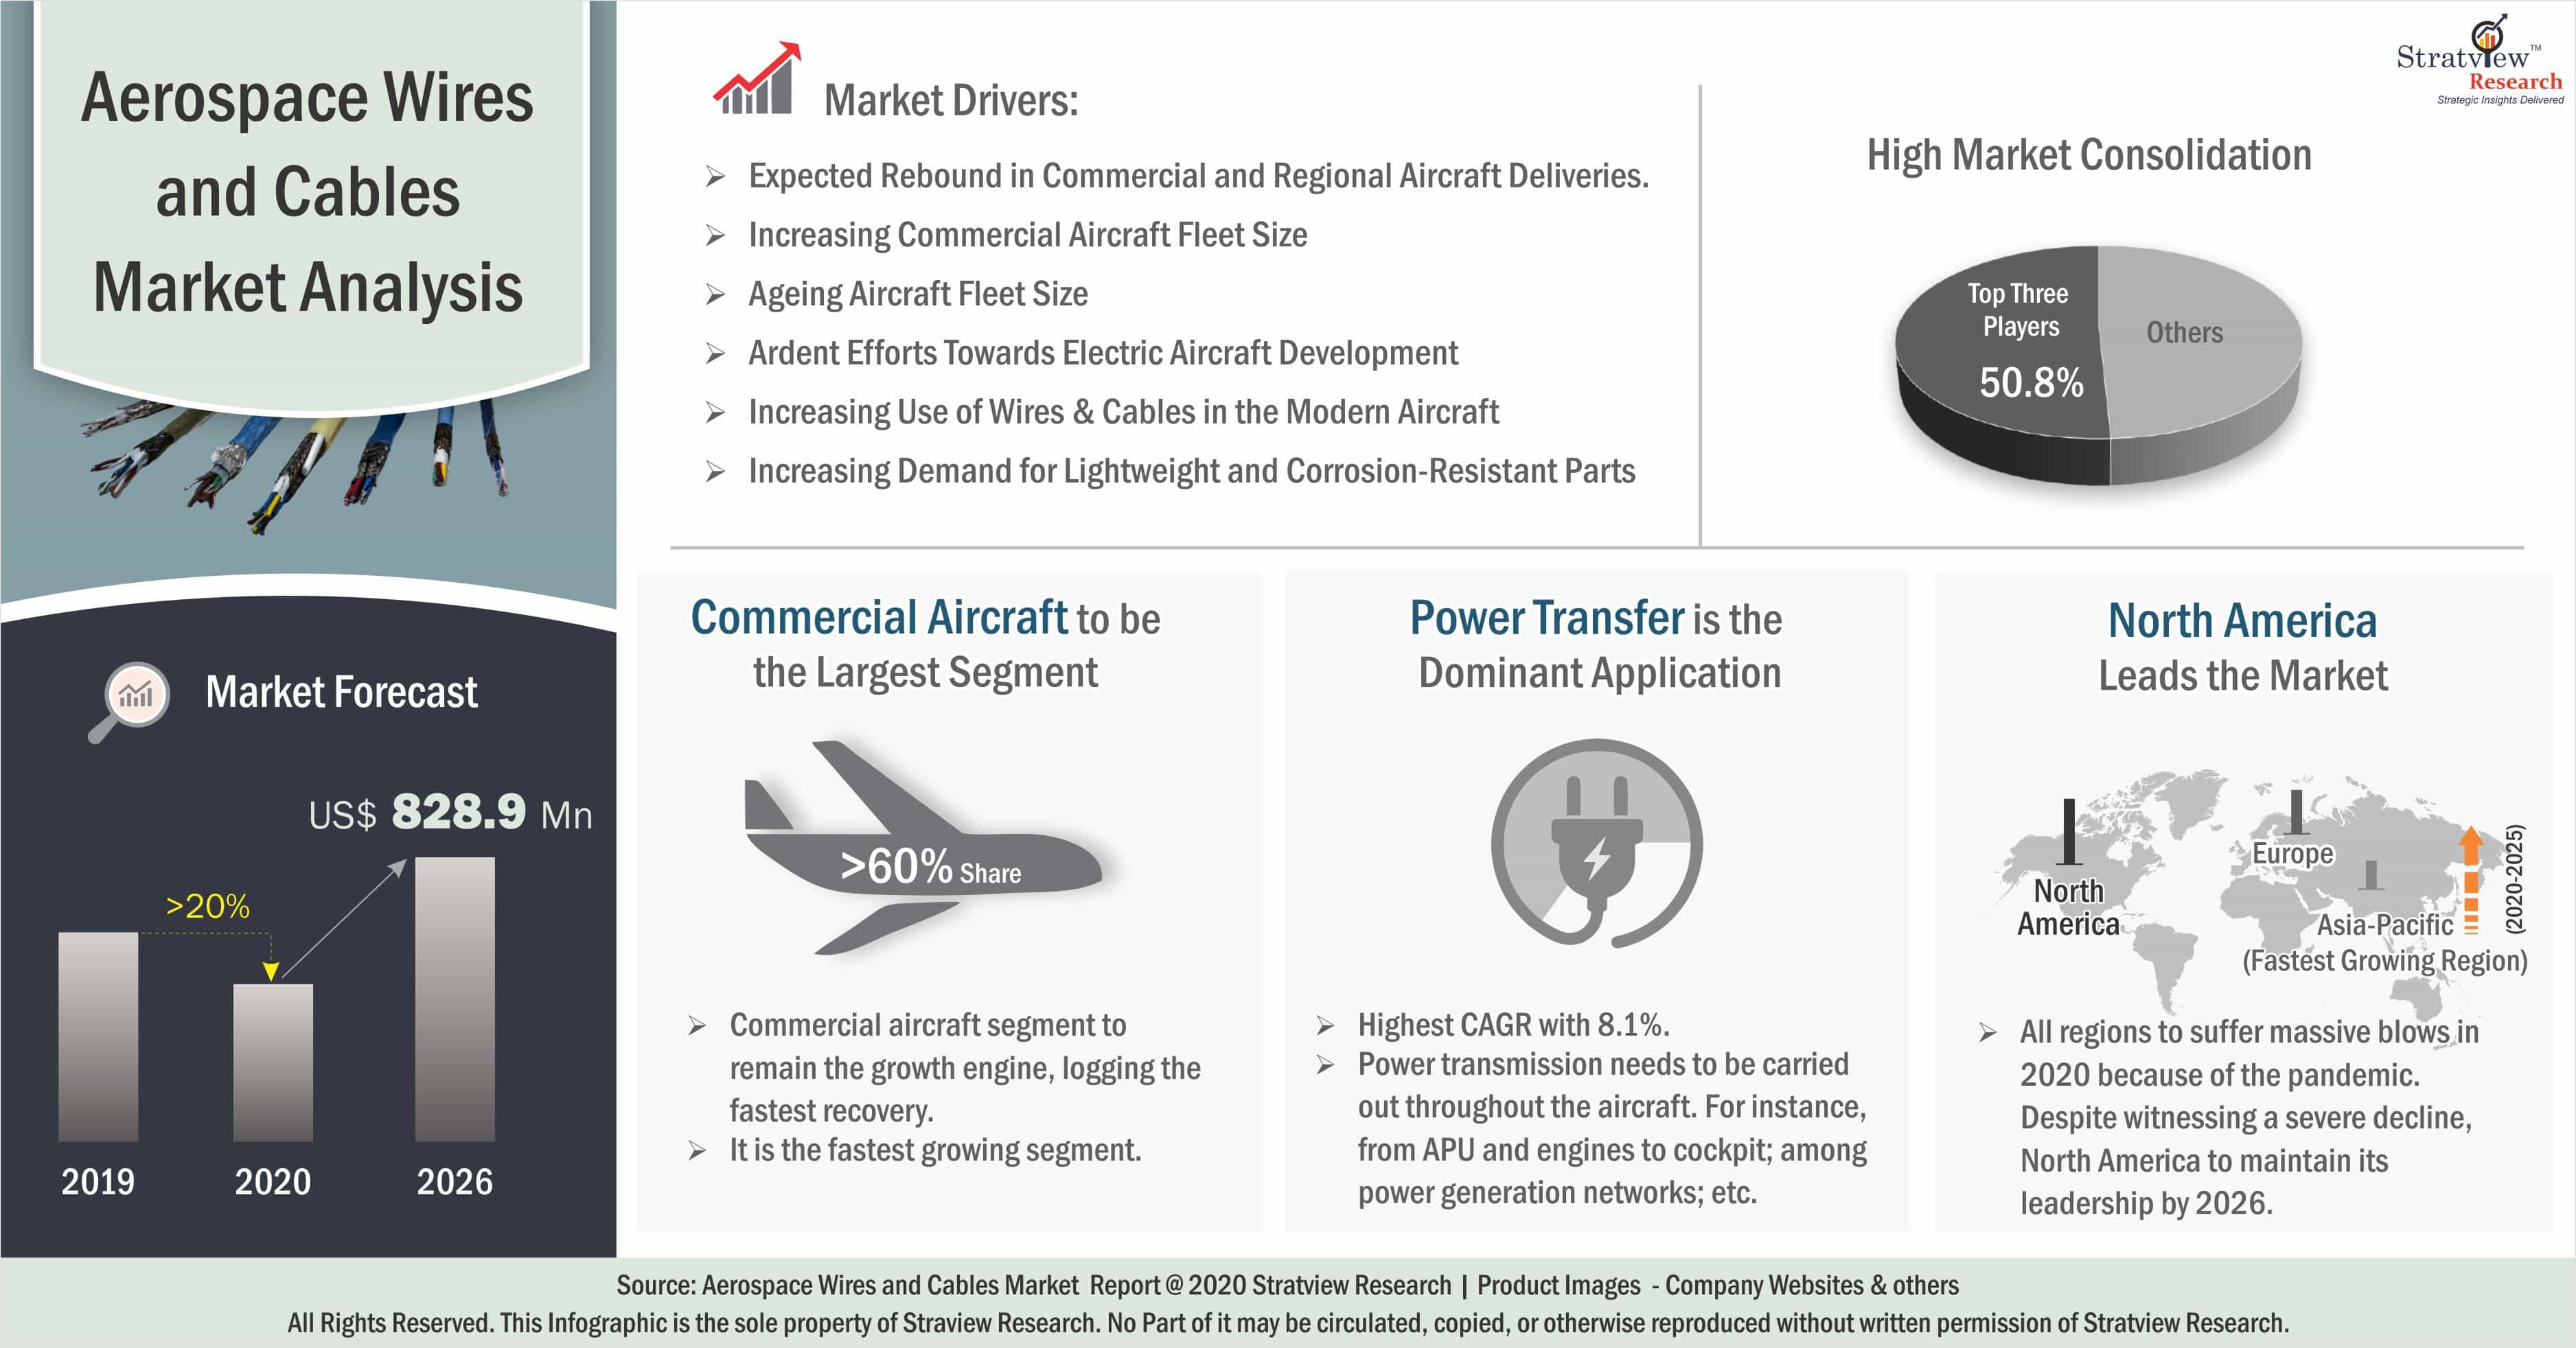 Aerospace Wires & Cables Market Analysis